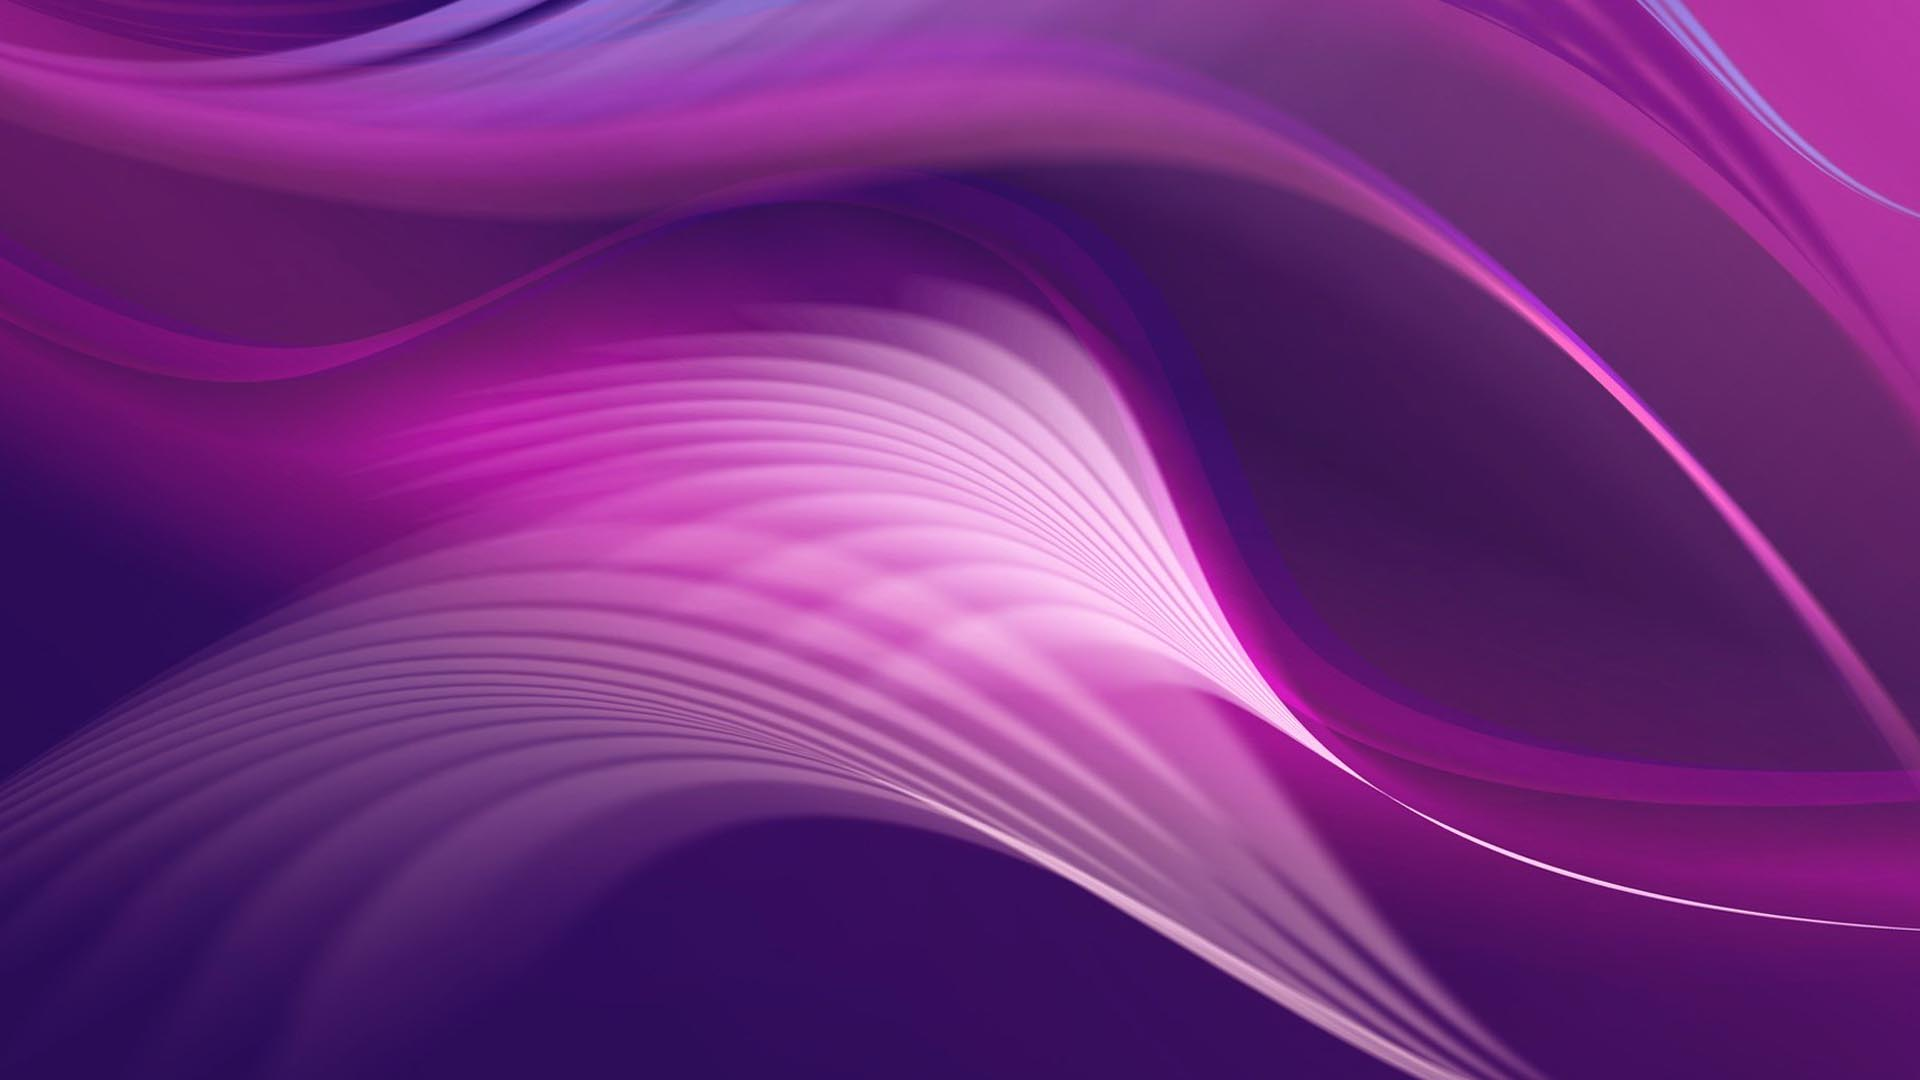 resolutions purple abstract wallpaper install on your desktop make 1920x1080